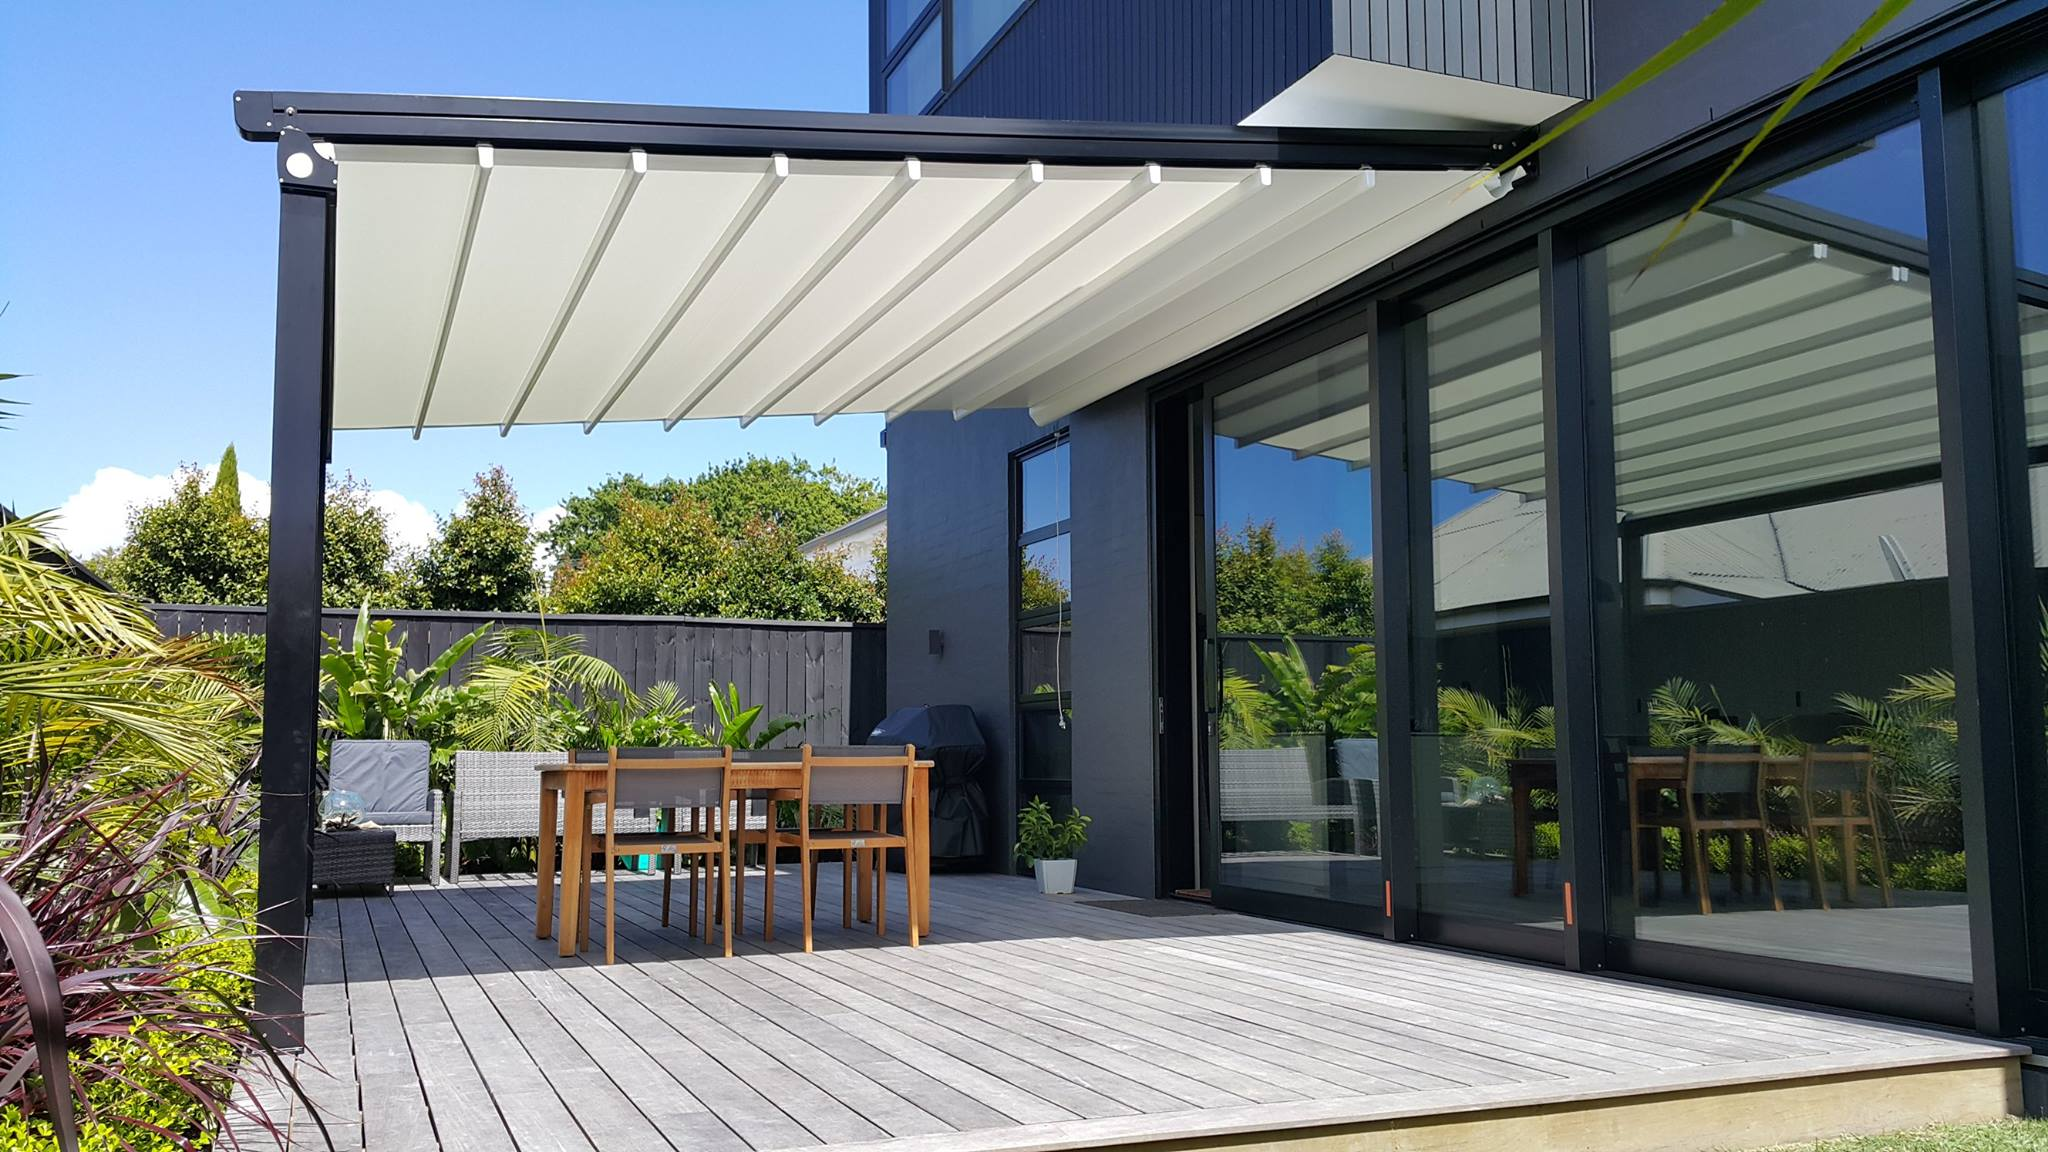 Oztech Retractable roof system